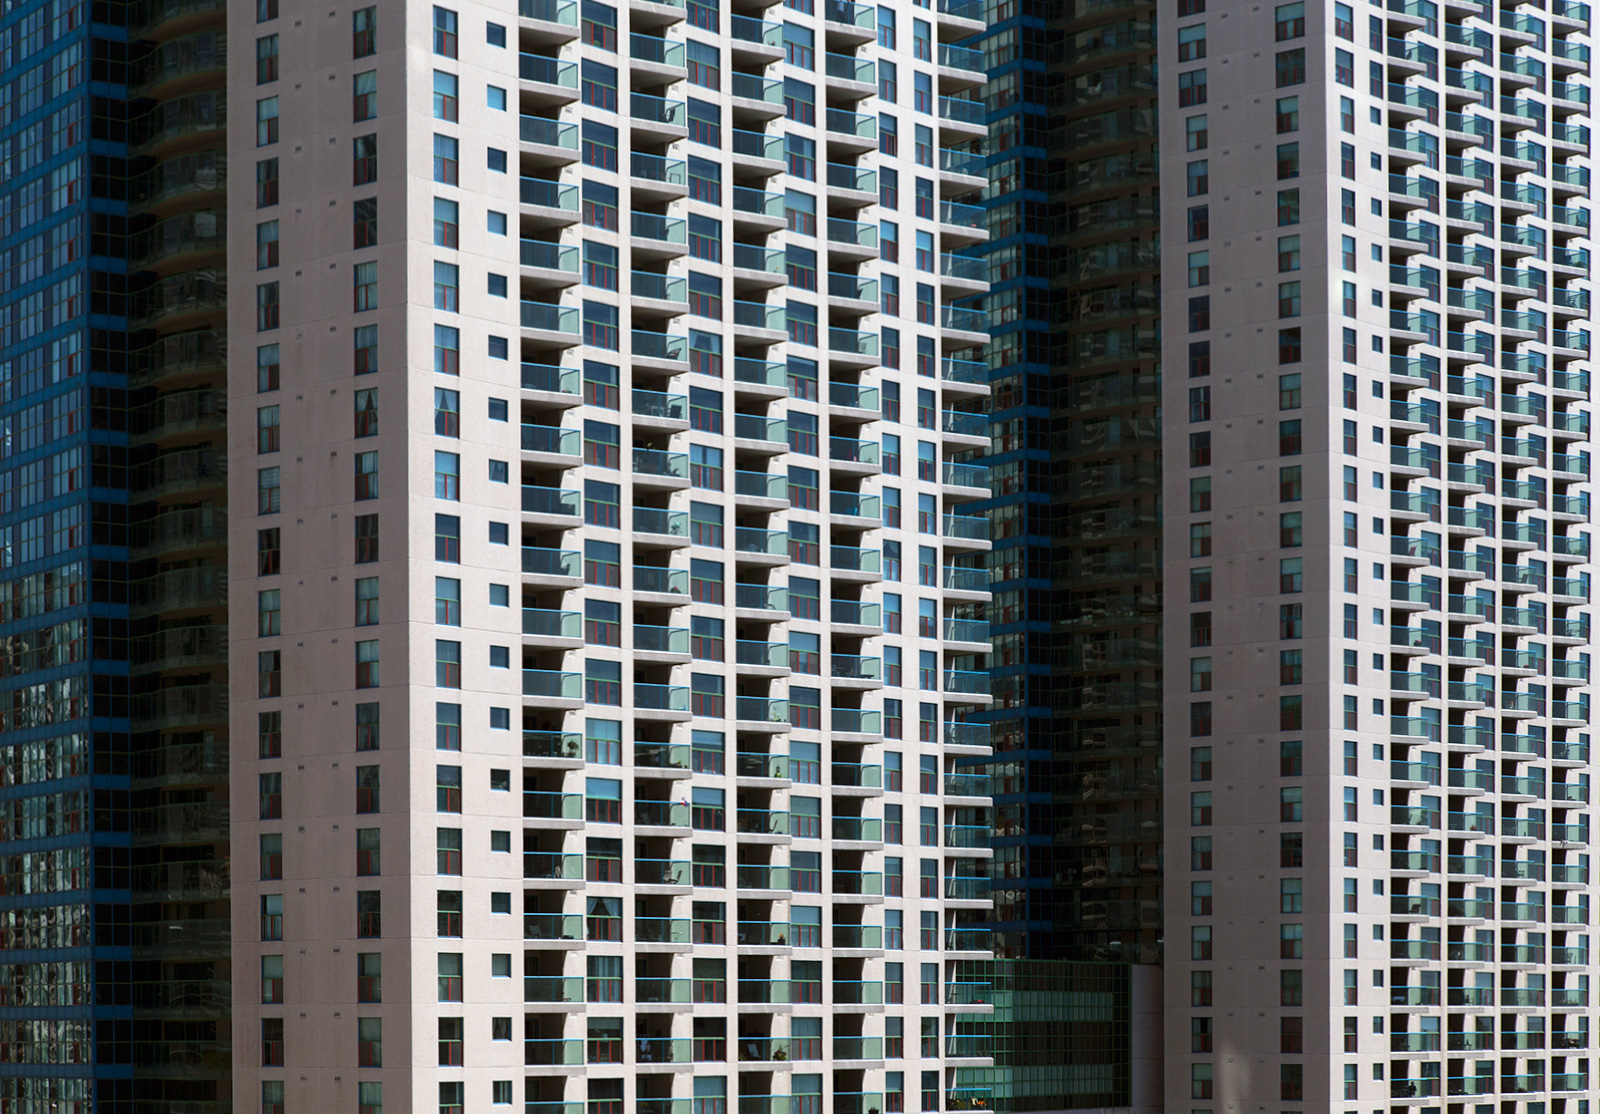 20140611. How many balconies are there at 99 and 77 Harbour Square (Toronto)?